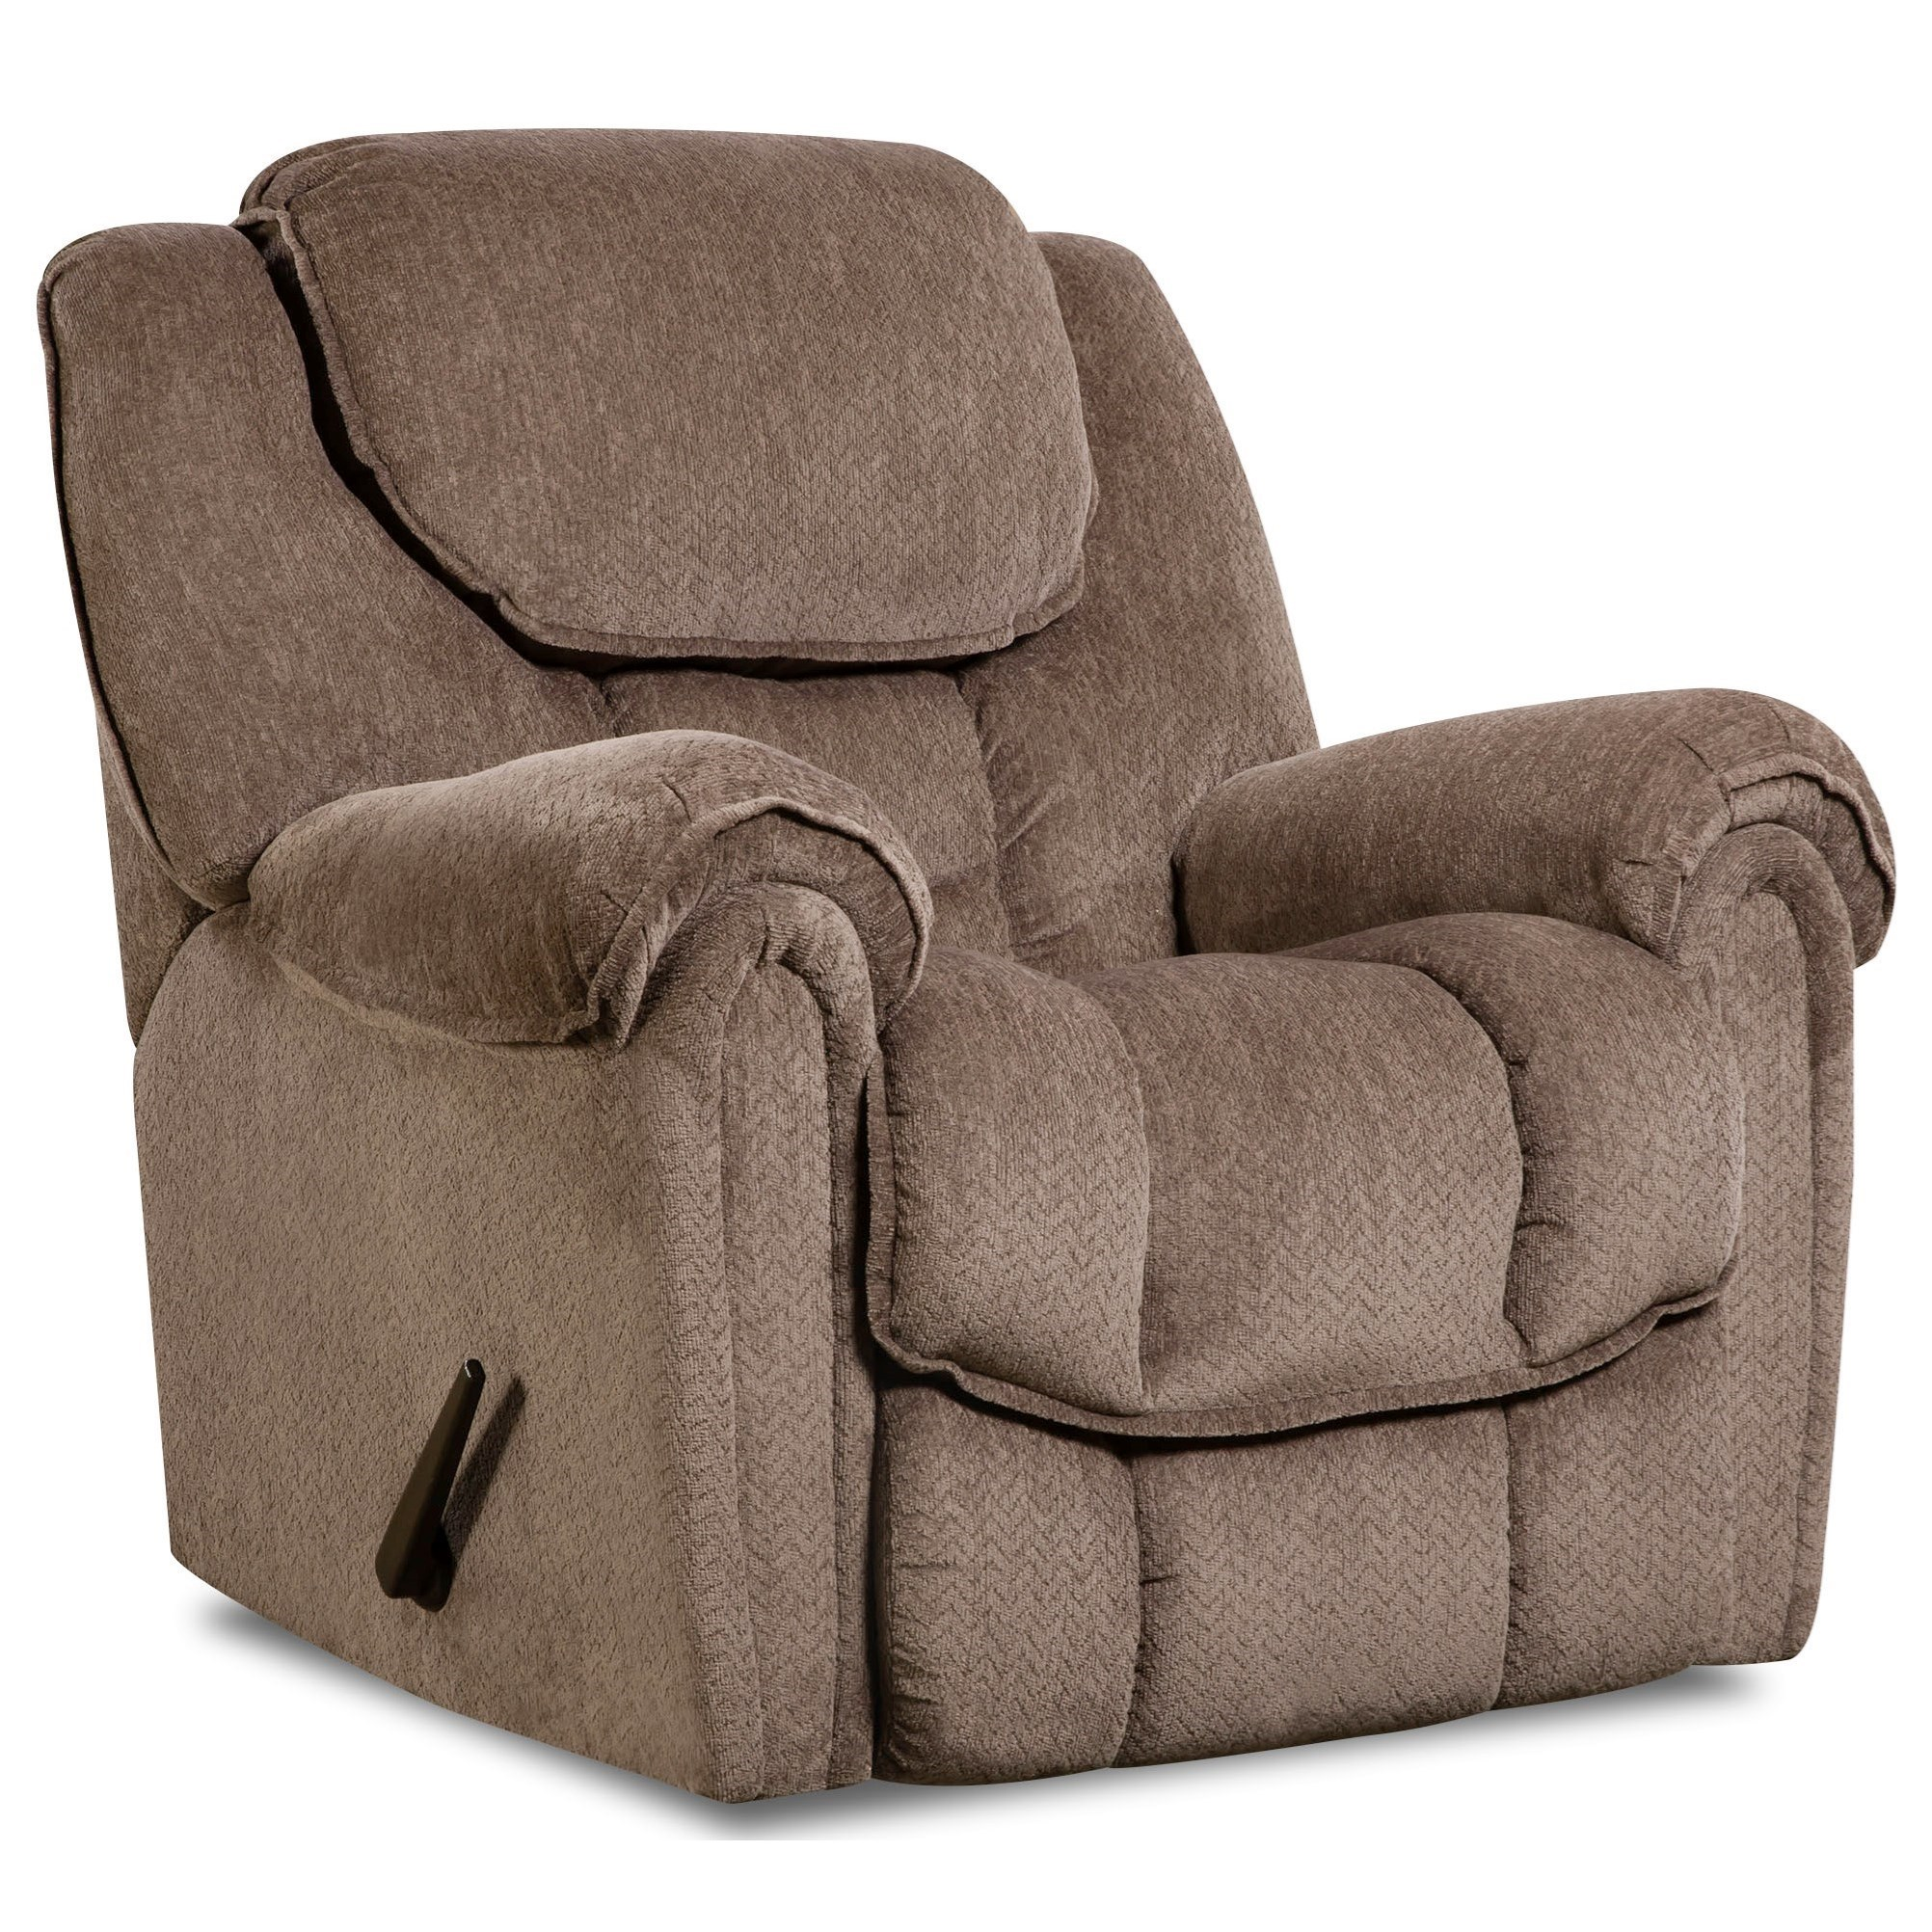 HomeStretch Del Mar 122 Casual Rocker Recliner with Pillow Arms - Miskelly Furniture - Three Way Recliners  sc 1 st  Miskelly Furniture : recliner pillow - islam-shia.org